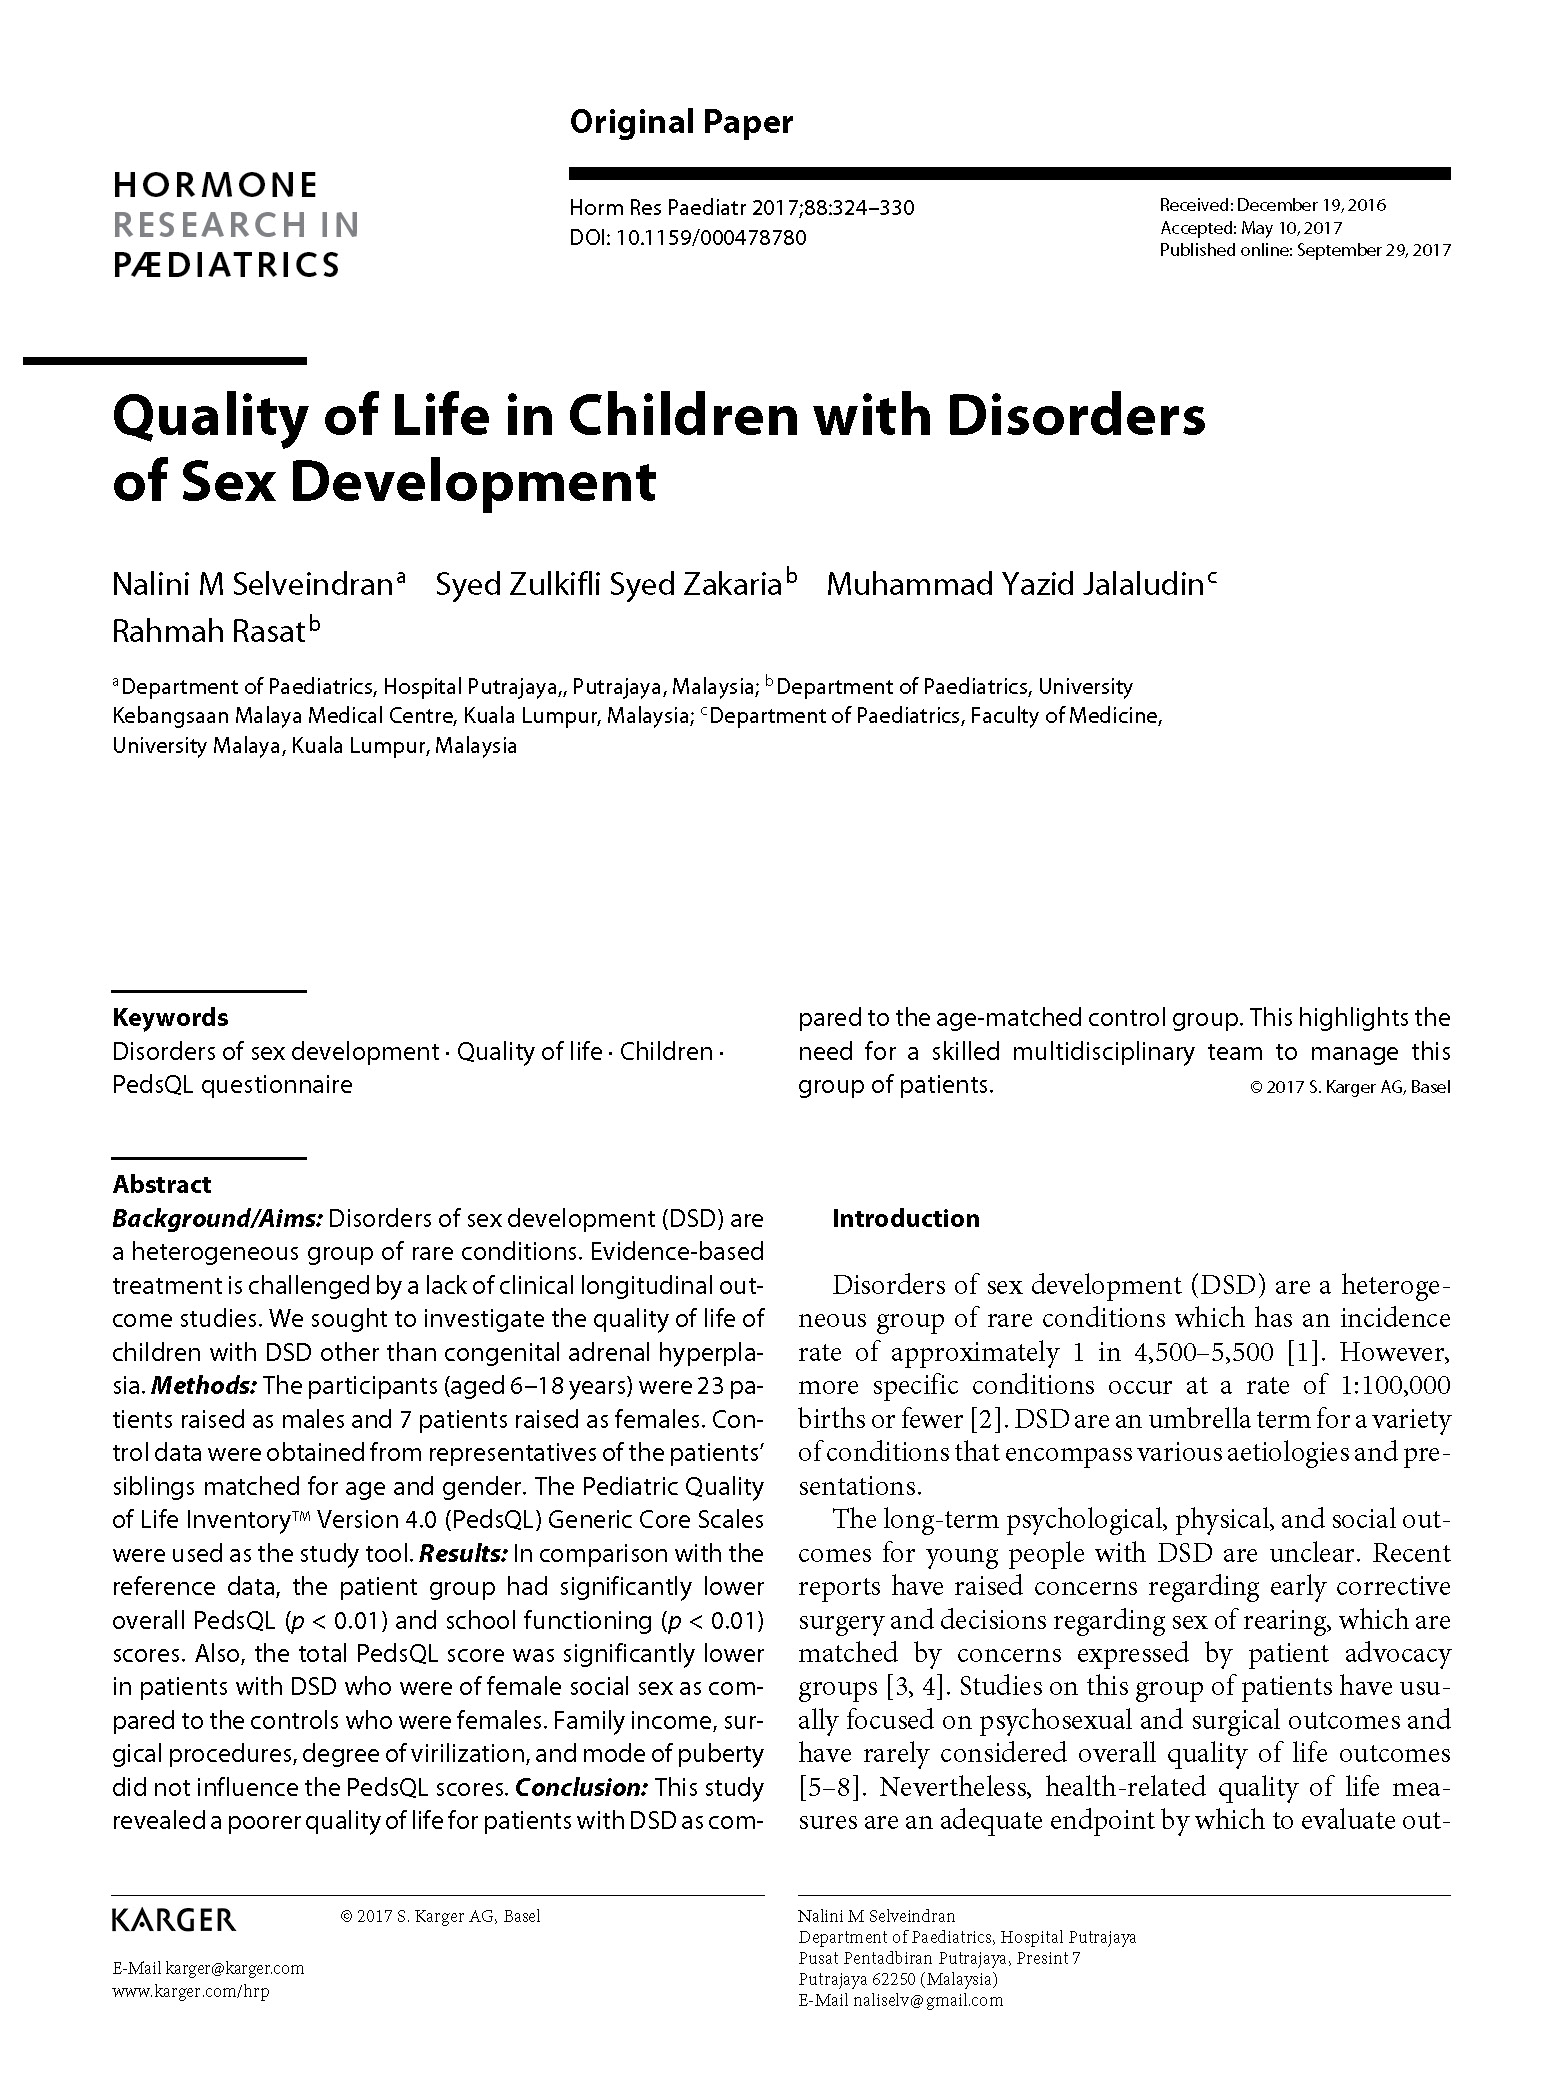 Quality of Life in Children with Disorders of Sex Development